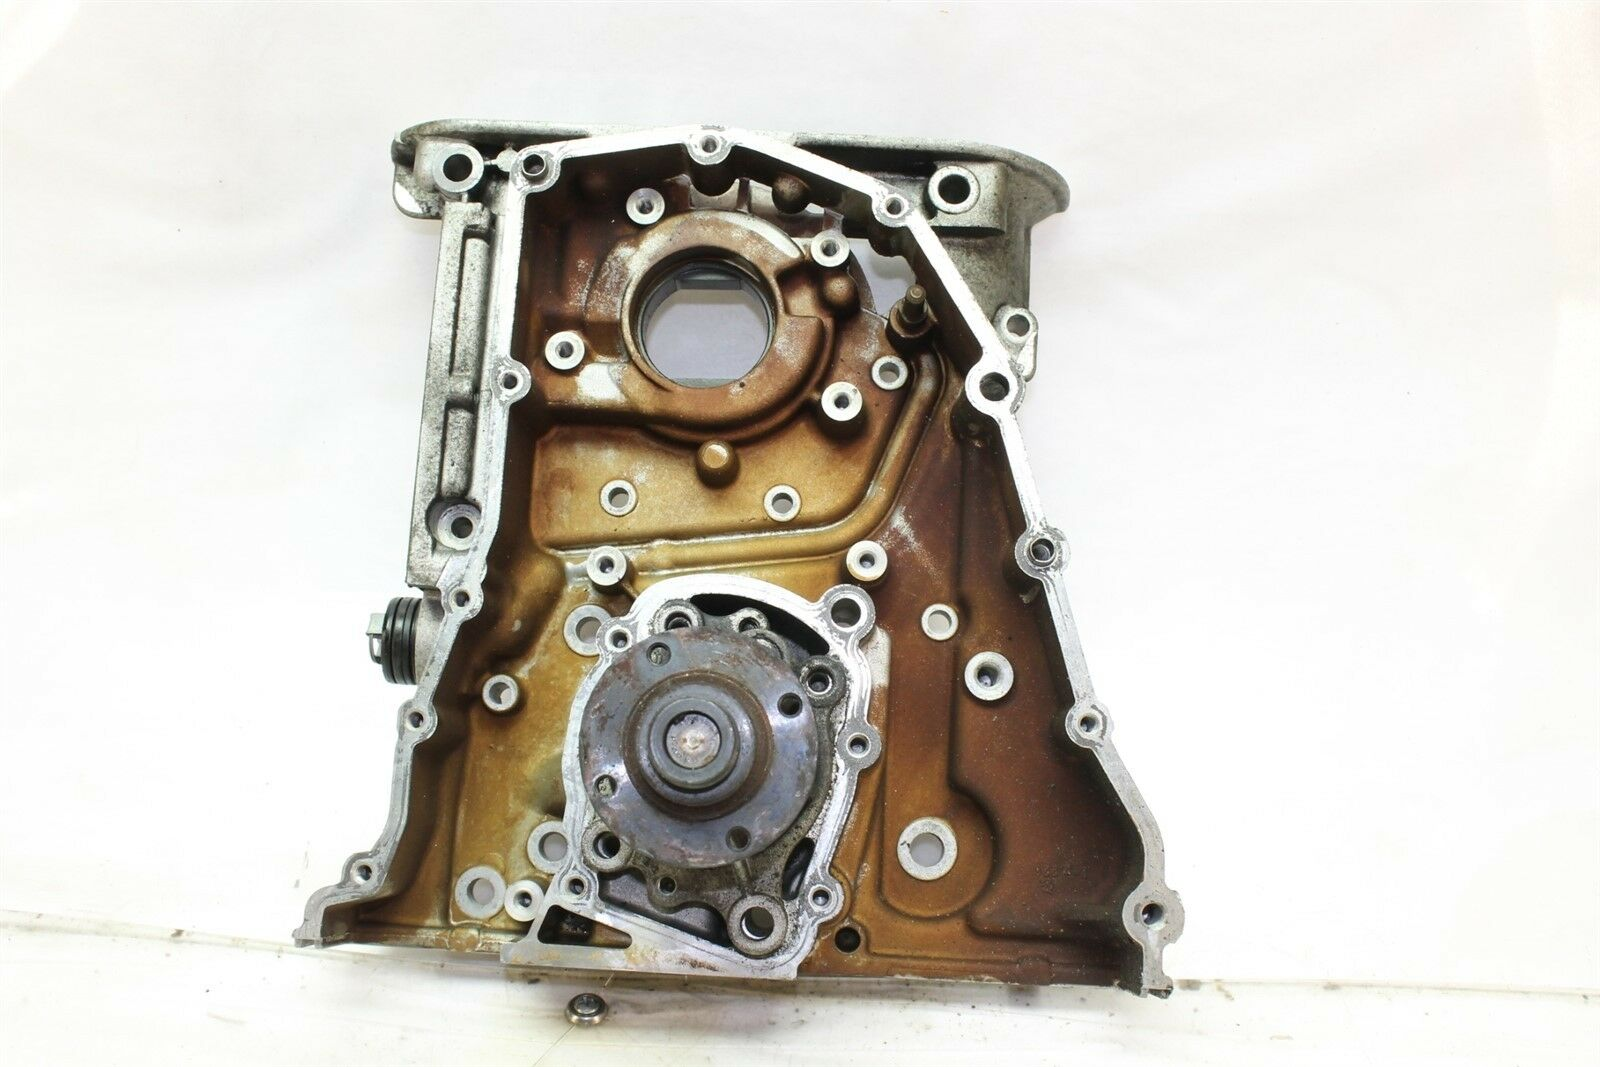 Used BMW Timing Components for Sale - Page 7